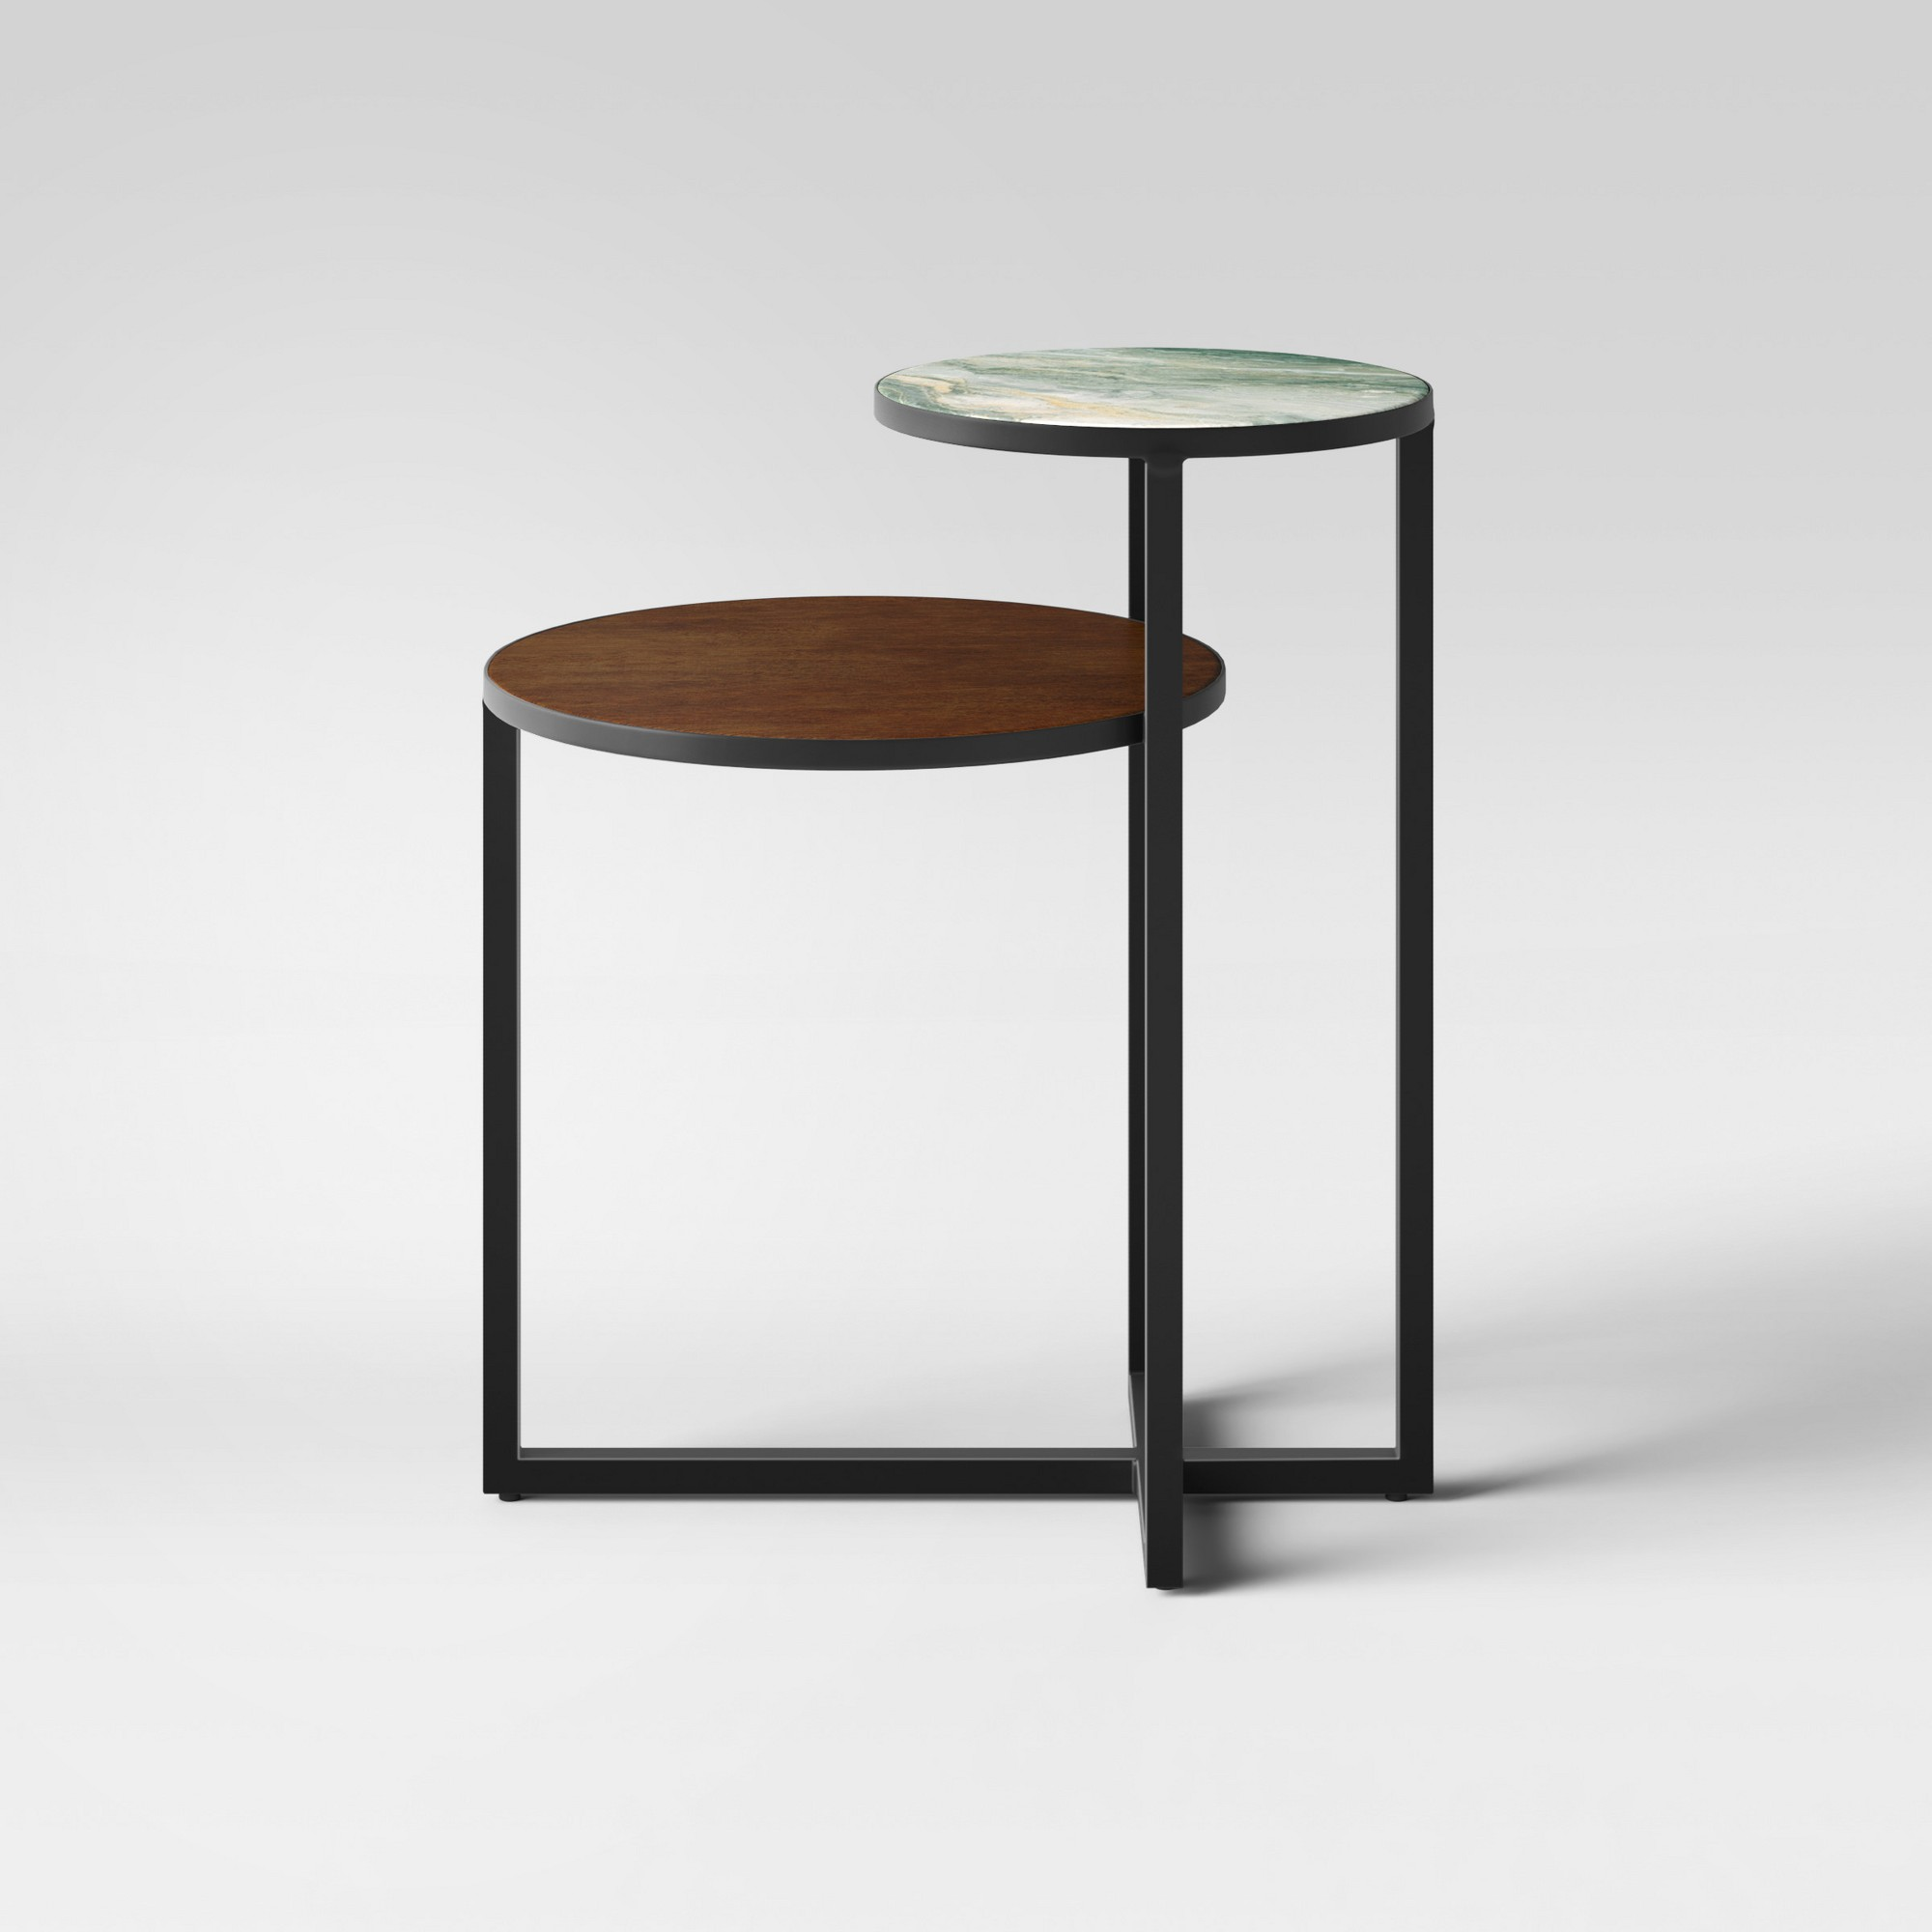 mixed material marble metal accent table project black tablecloths for large round tables base nautical pendant lights pine bedside tray end tall chairs small coffee with drawers